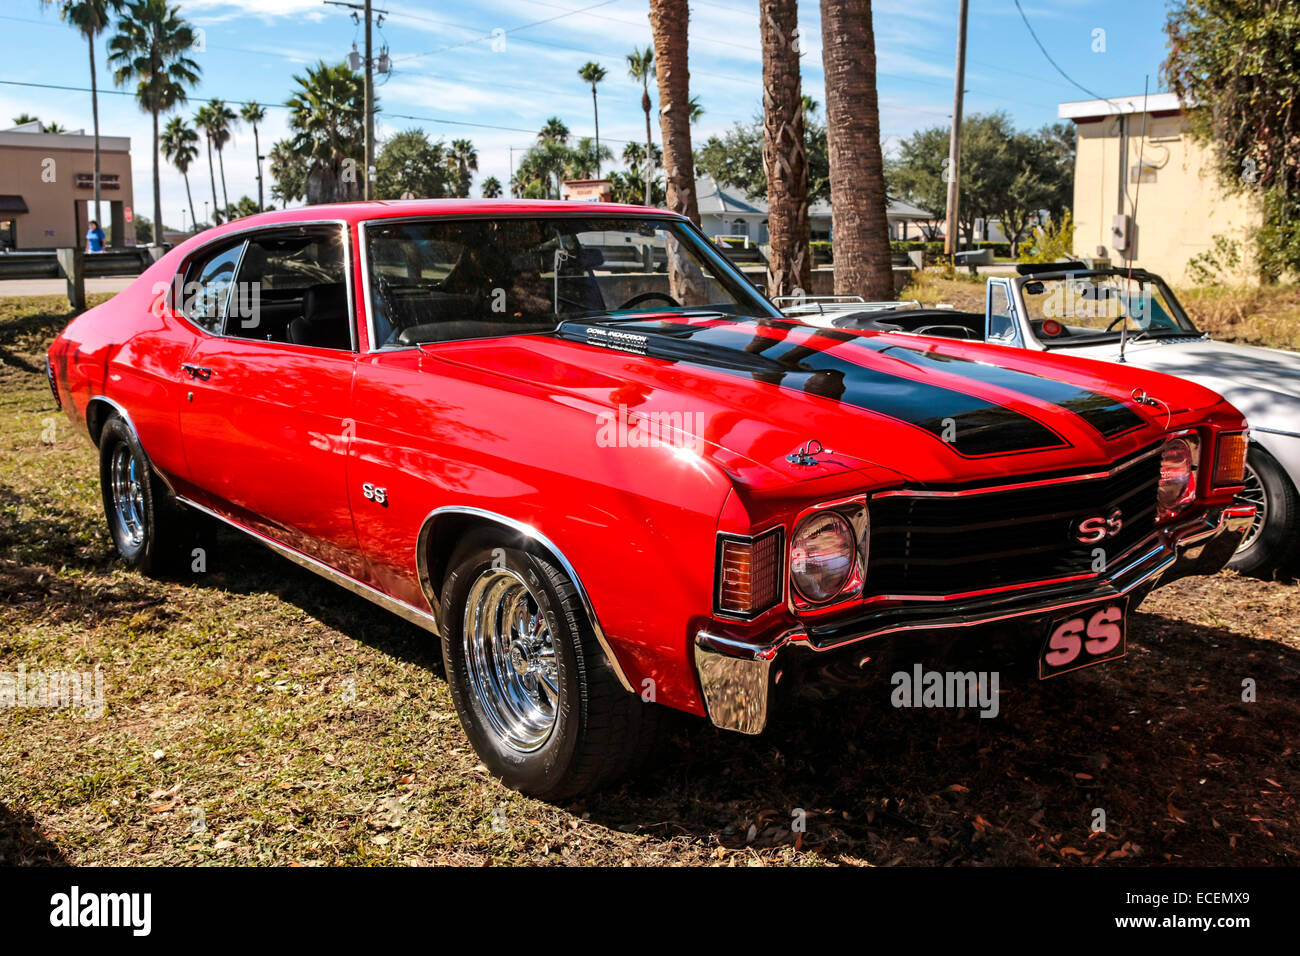 1974 Red Chevy Nova Ss Muscle Car On Display At A Vintage Vehicle